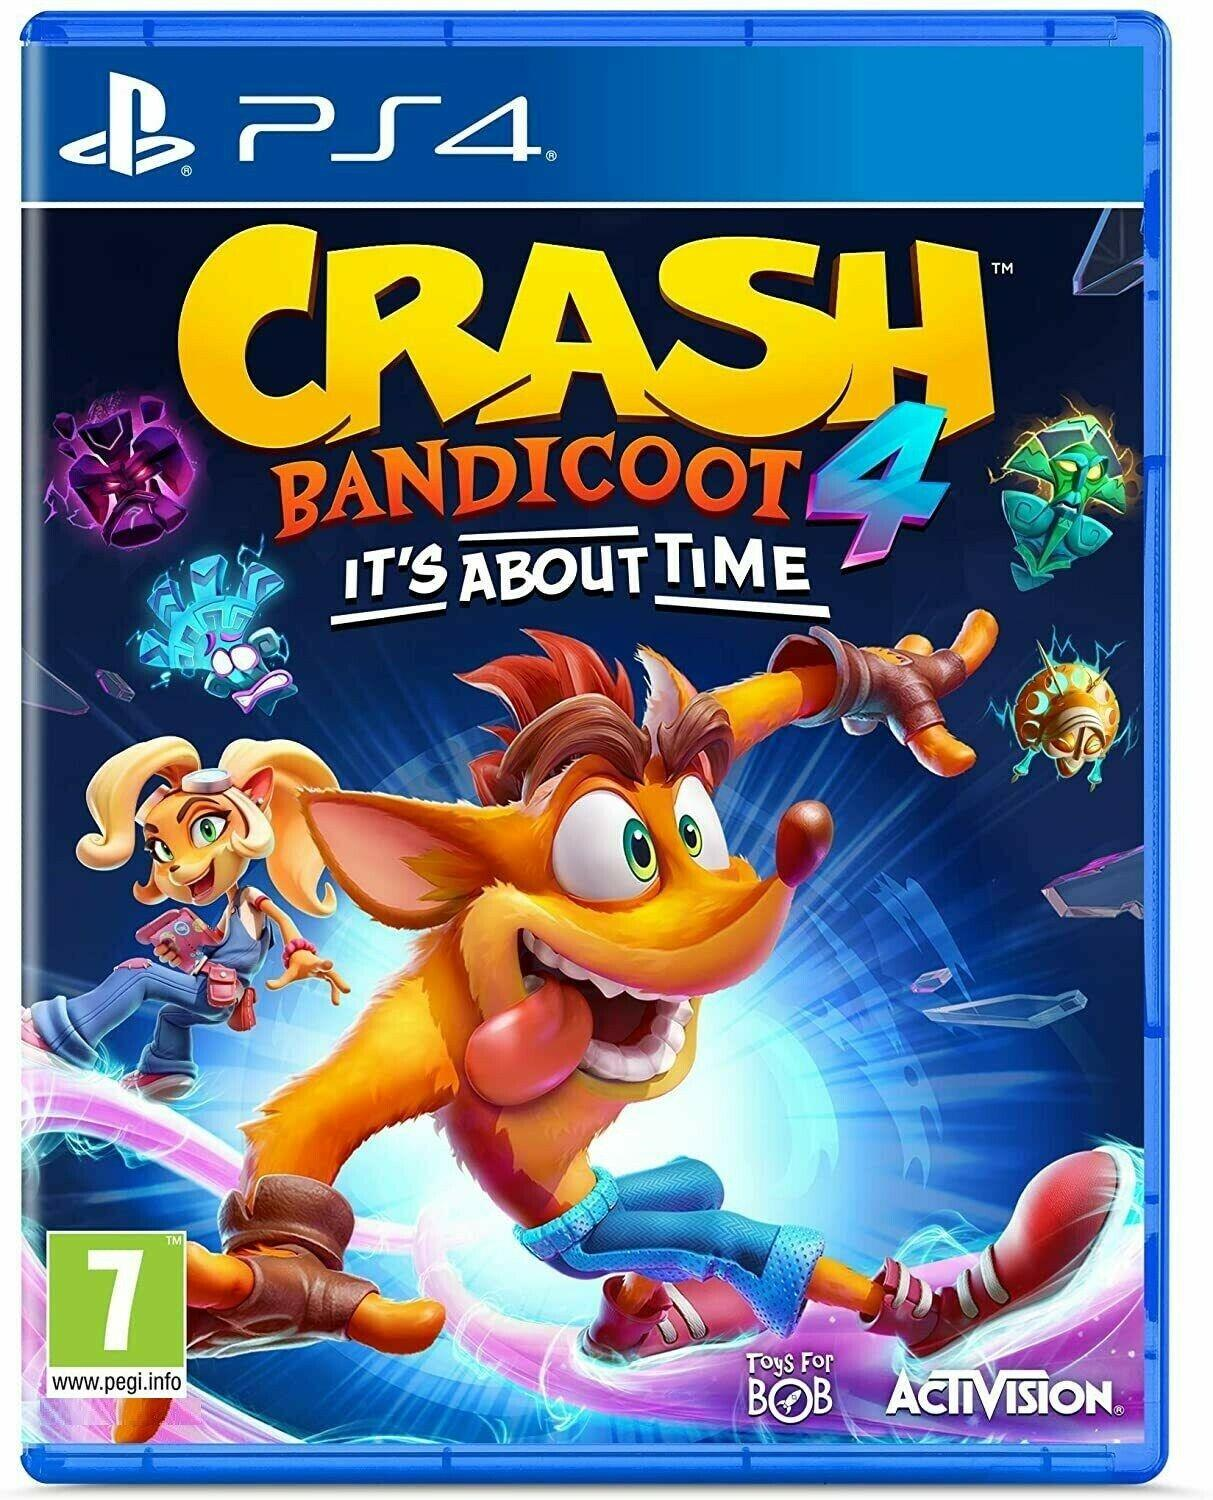 ACTIVISION Crash Bandicoot 4 Its about time PS4 IT